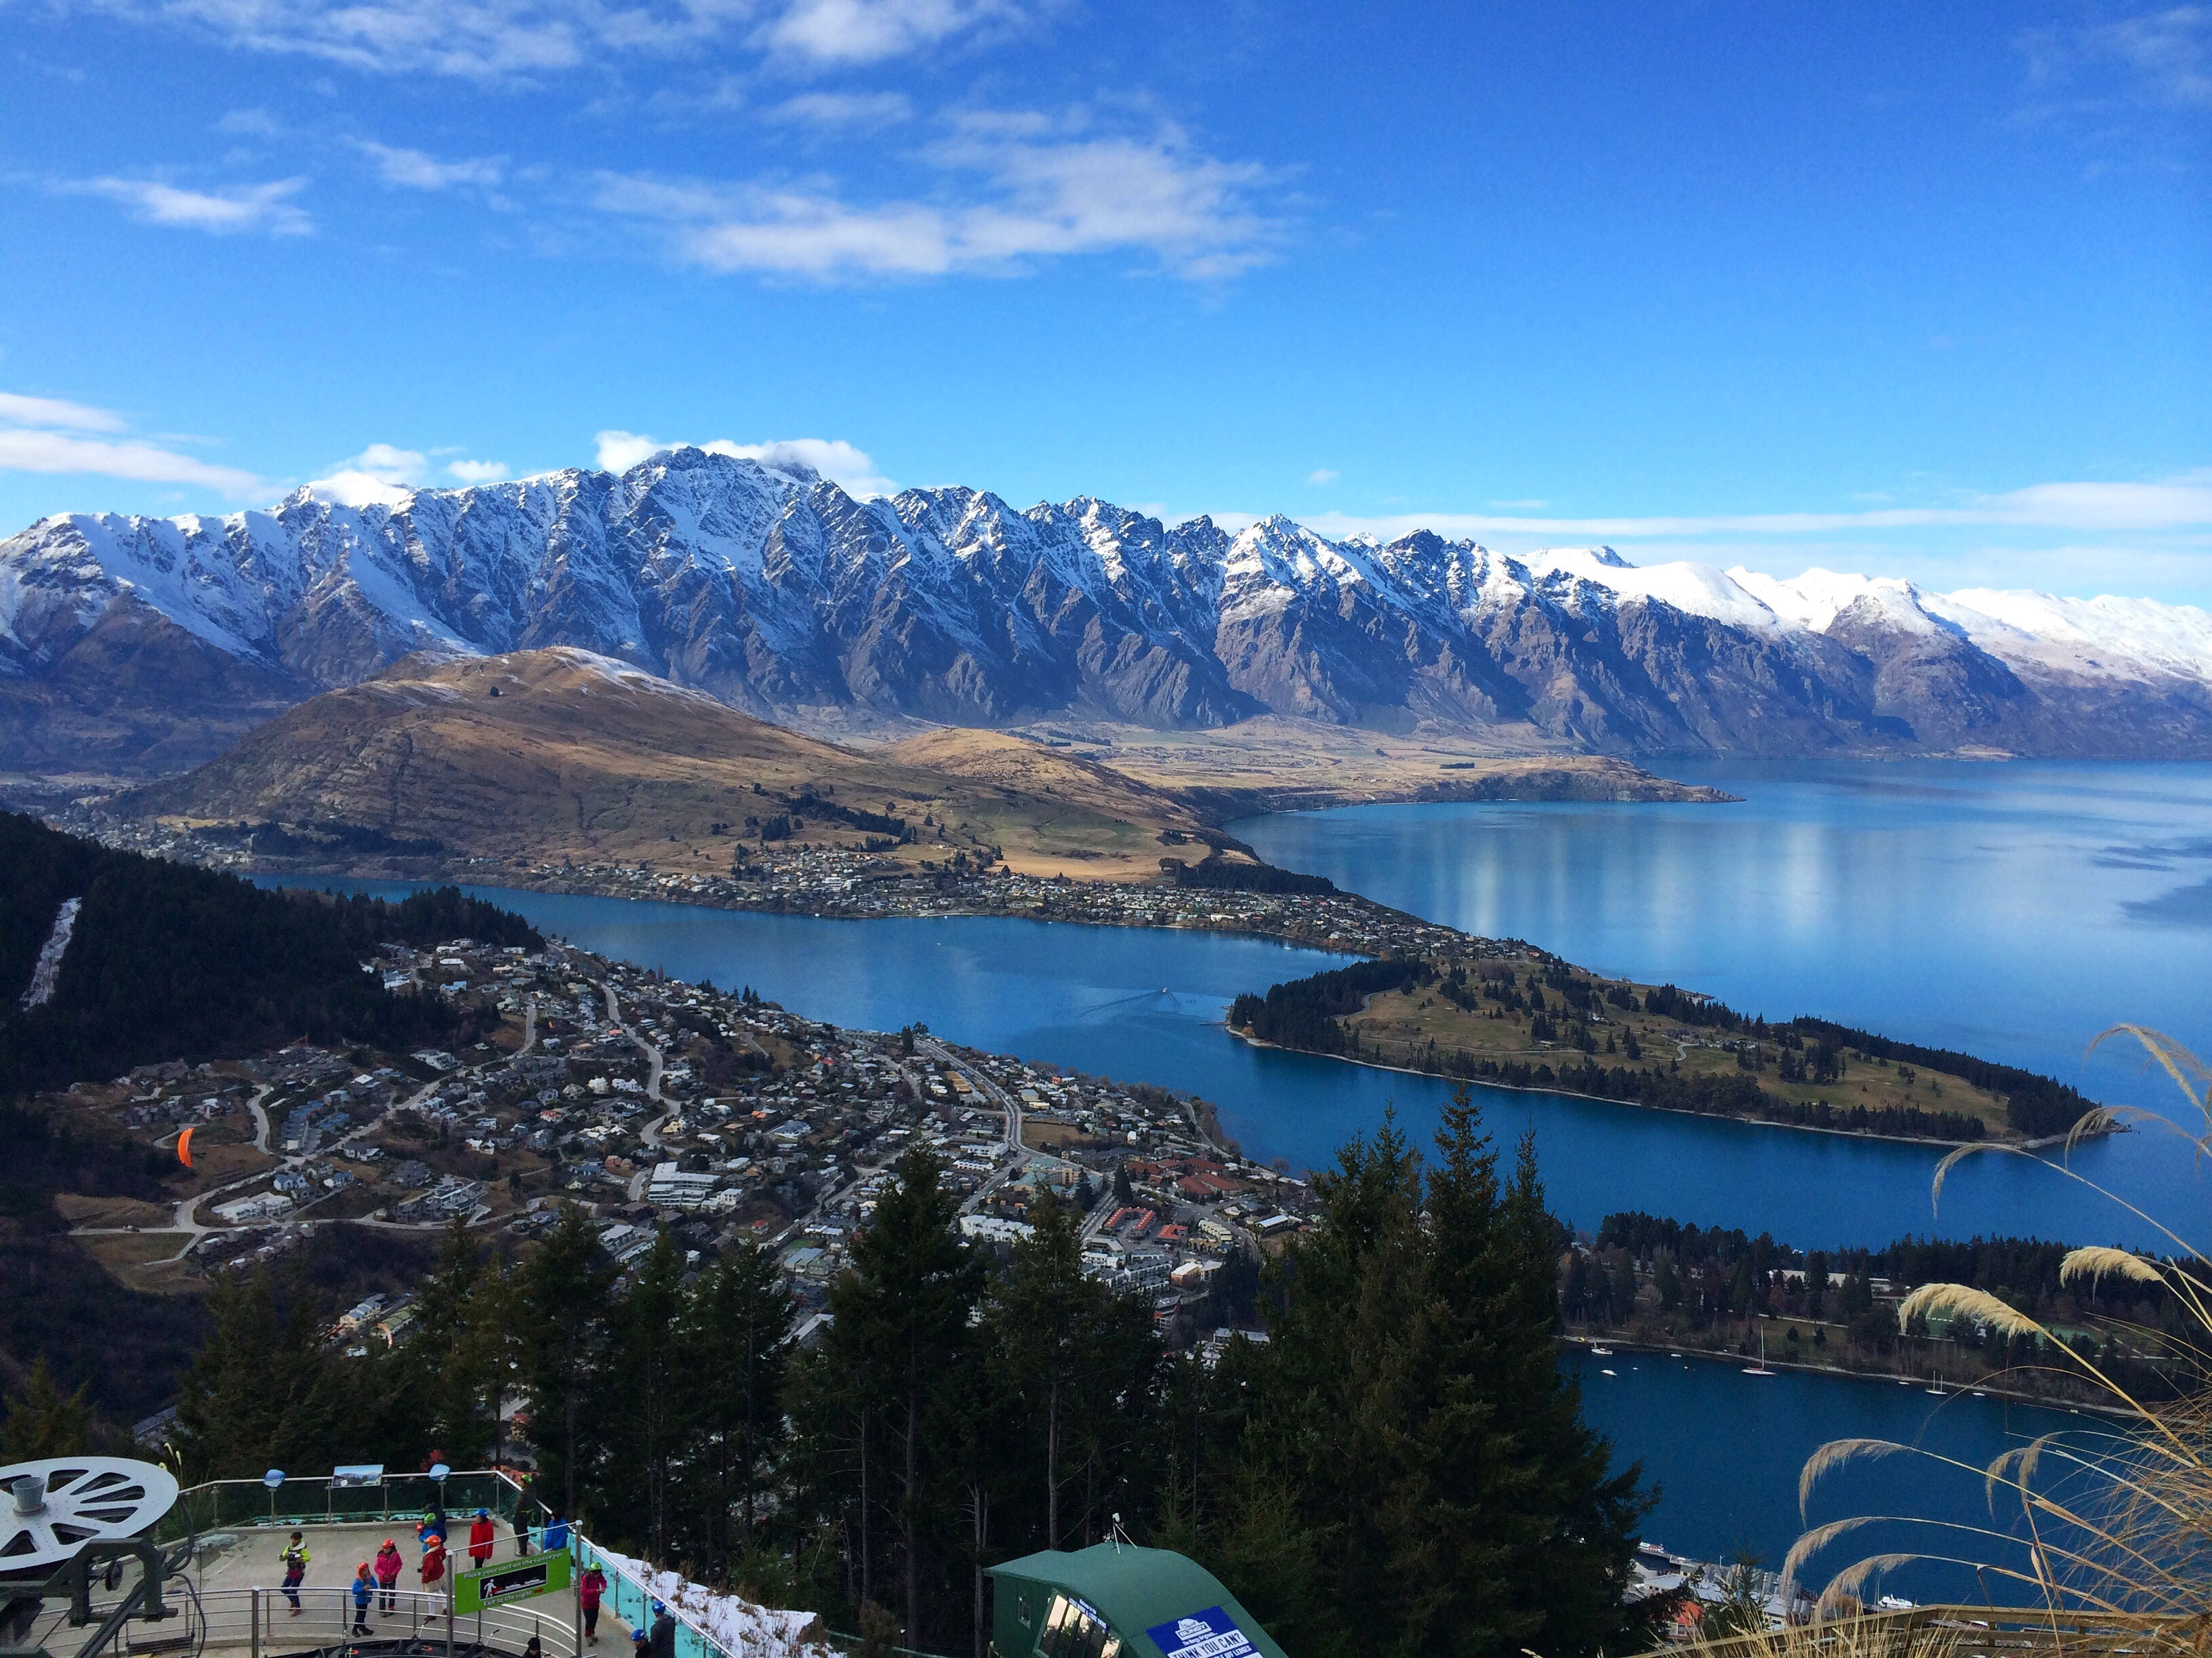 Queenstown from above at the top of Skyline Gondola